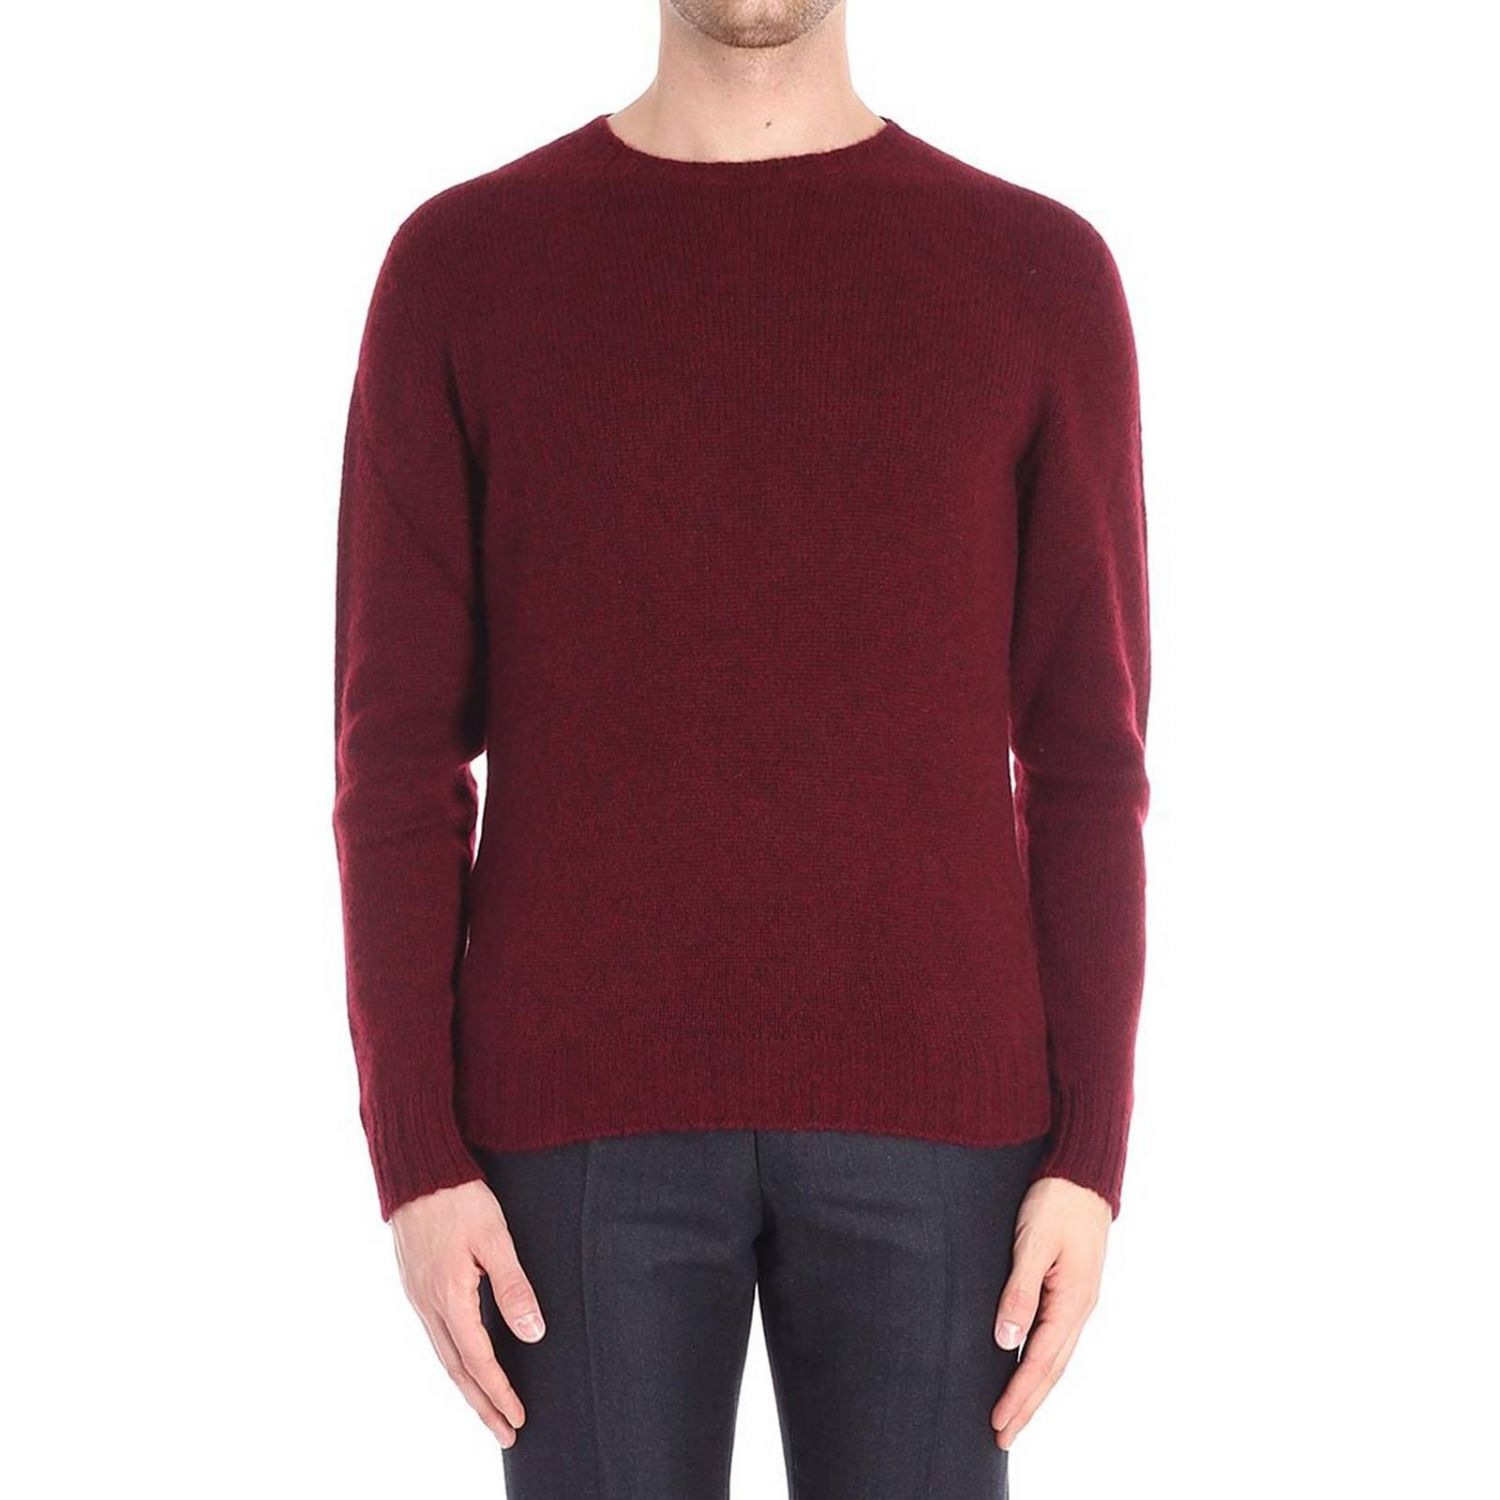 Sweater men Etro burgundy 1